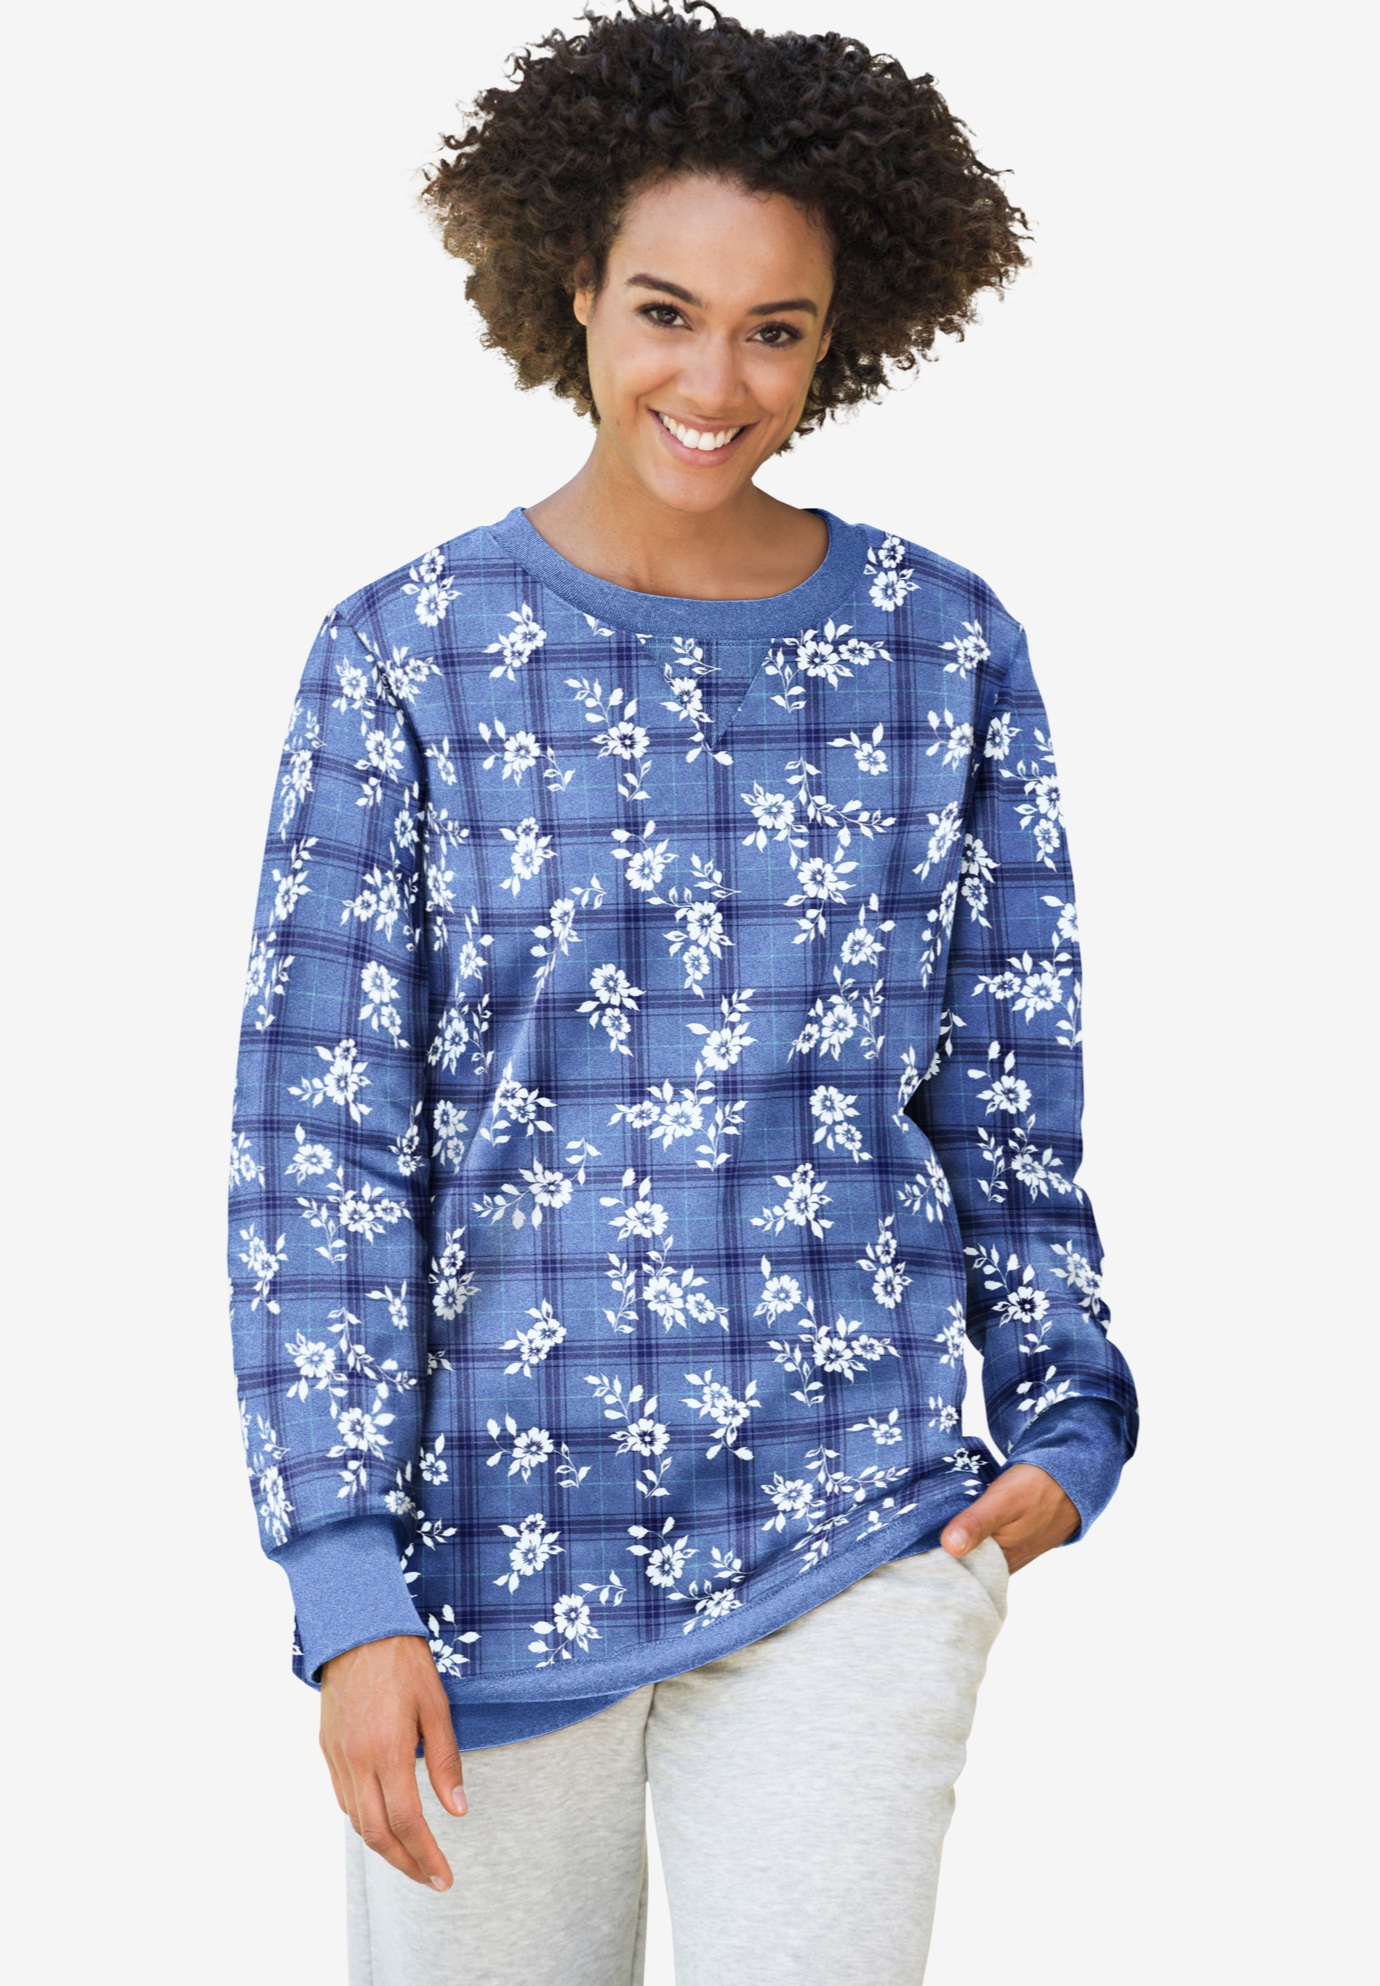 Fleece Sweatshirt,